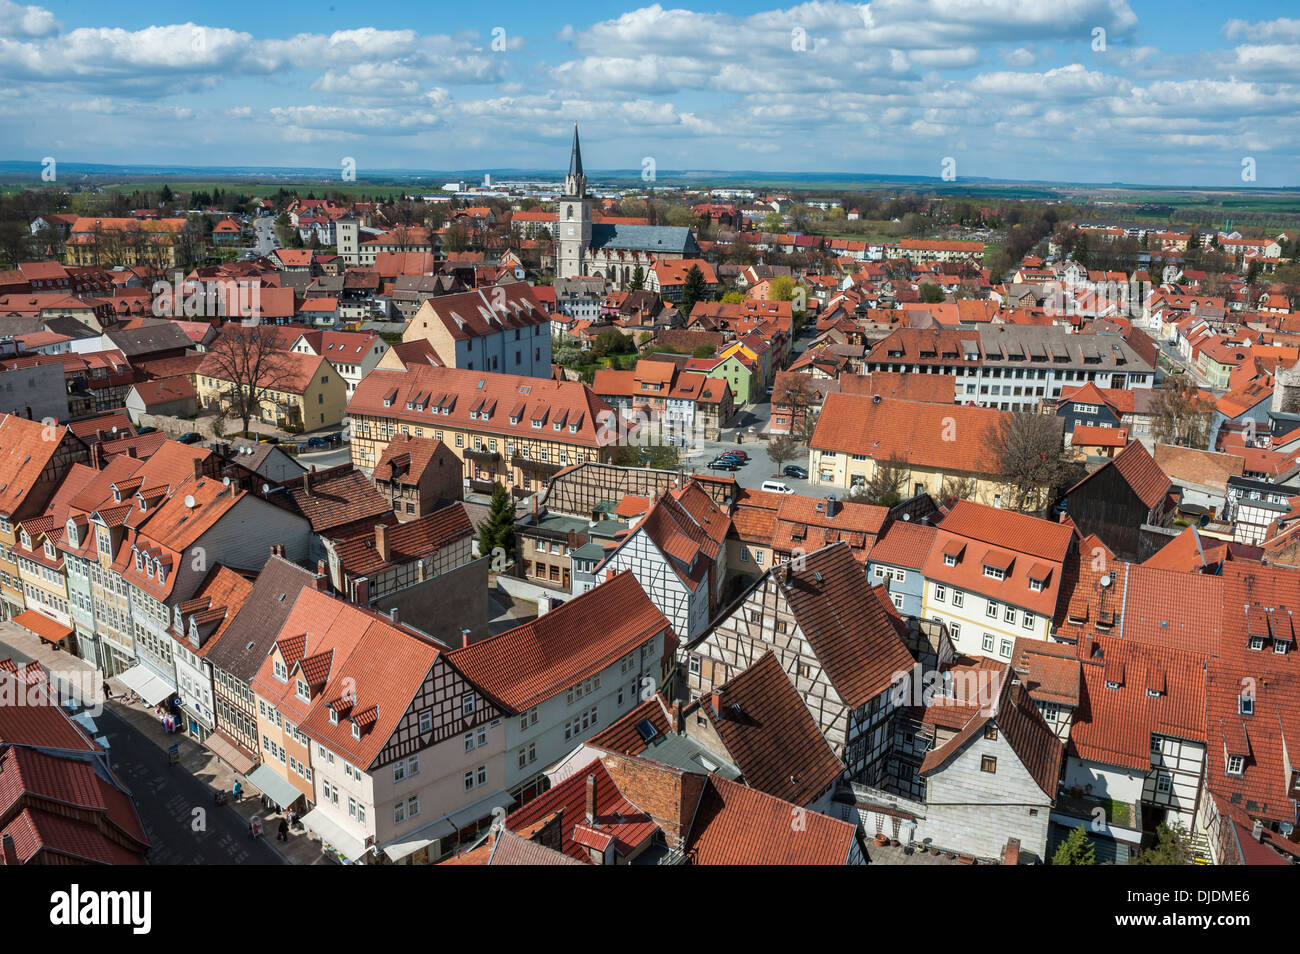 Historical centre of Bad Langensalza, Thuringia, Germany - Stock Image